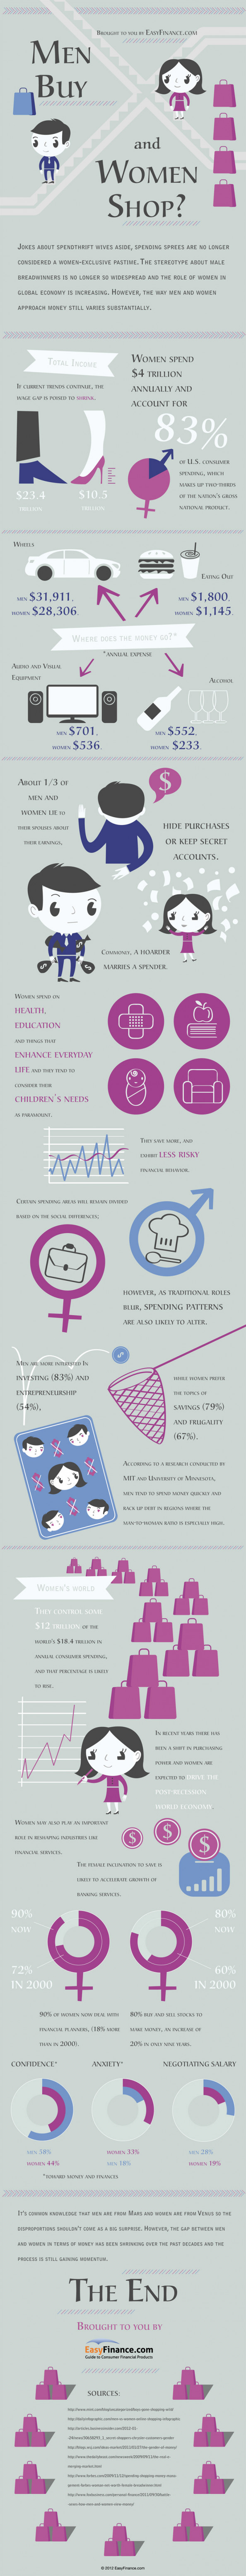 The Battle of the Sexes - Who Is the Big Spender? Infographic